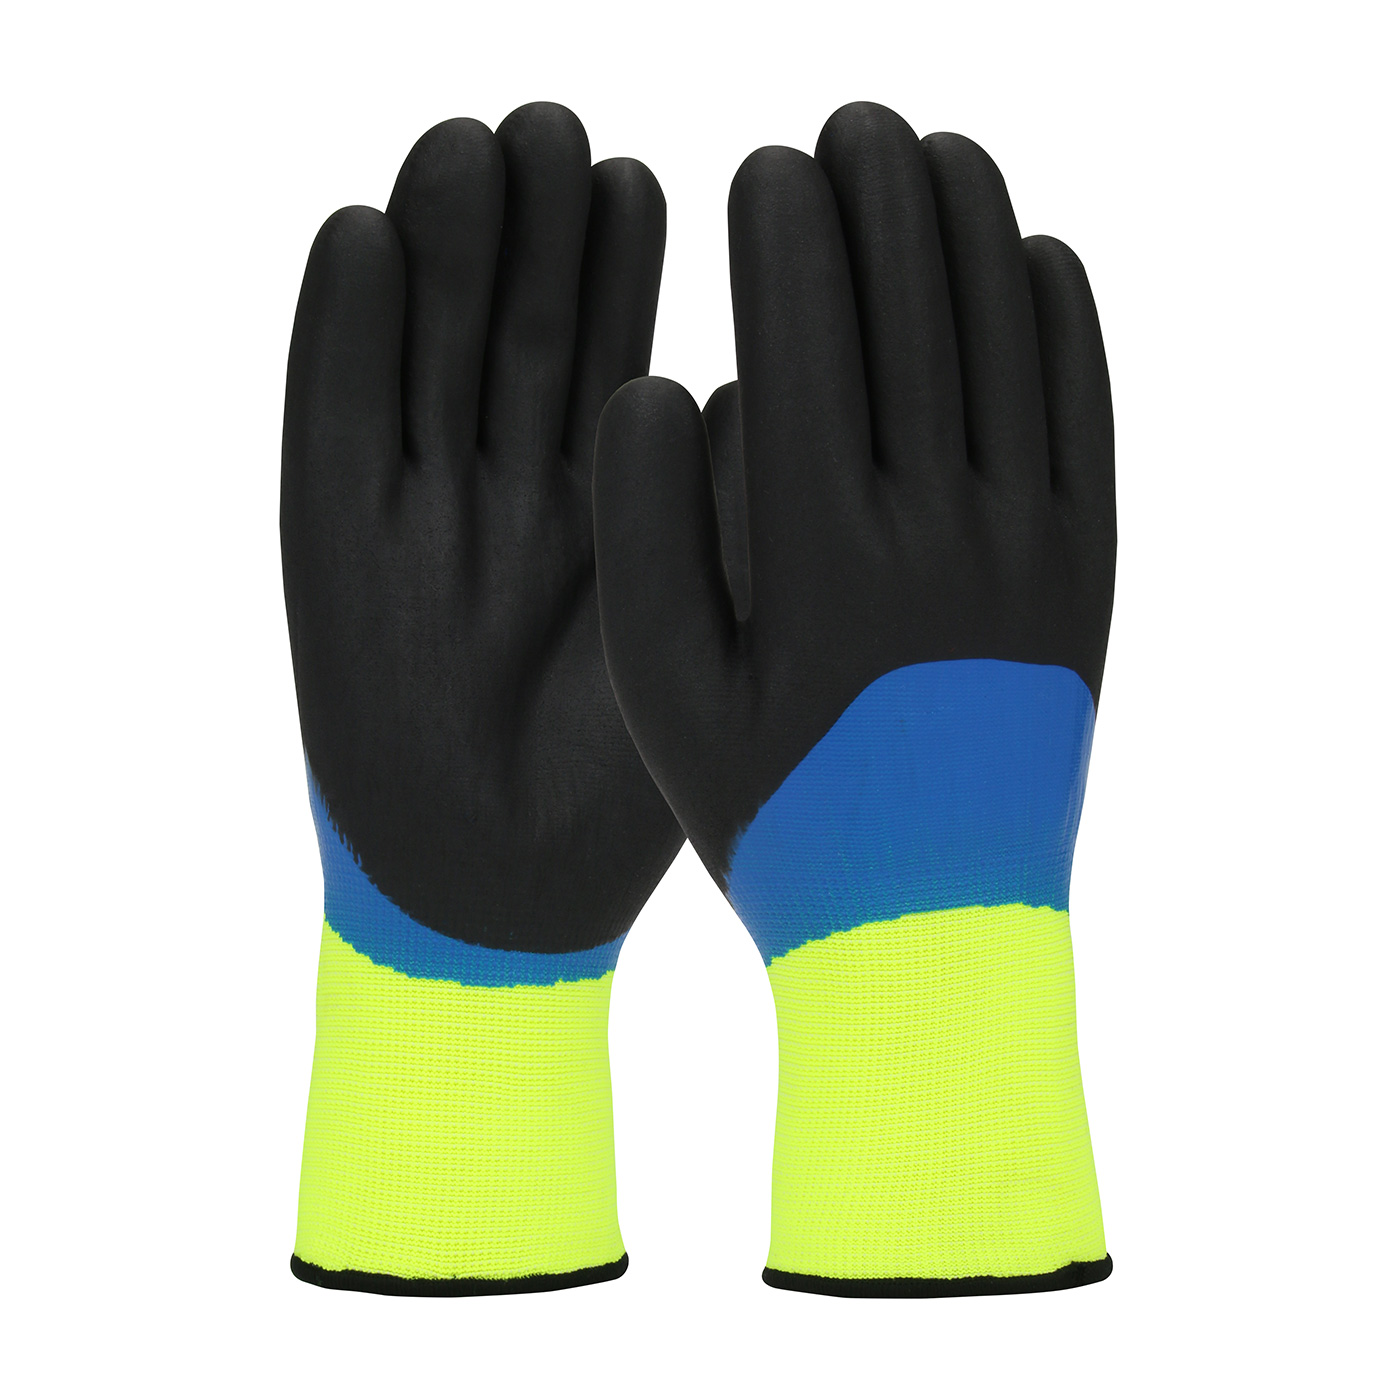 #41-1415 PIP® G-Tek® GP™ Hi-Vis Seamless Knit Nylon Glove with Acrylic Liner and Double Dipped Nitrile Coated Foam Grip on Full Hand